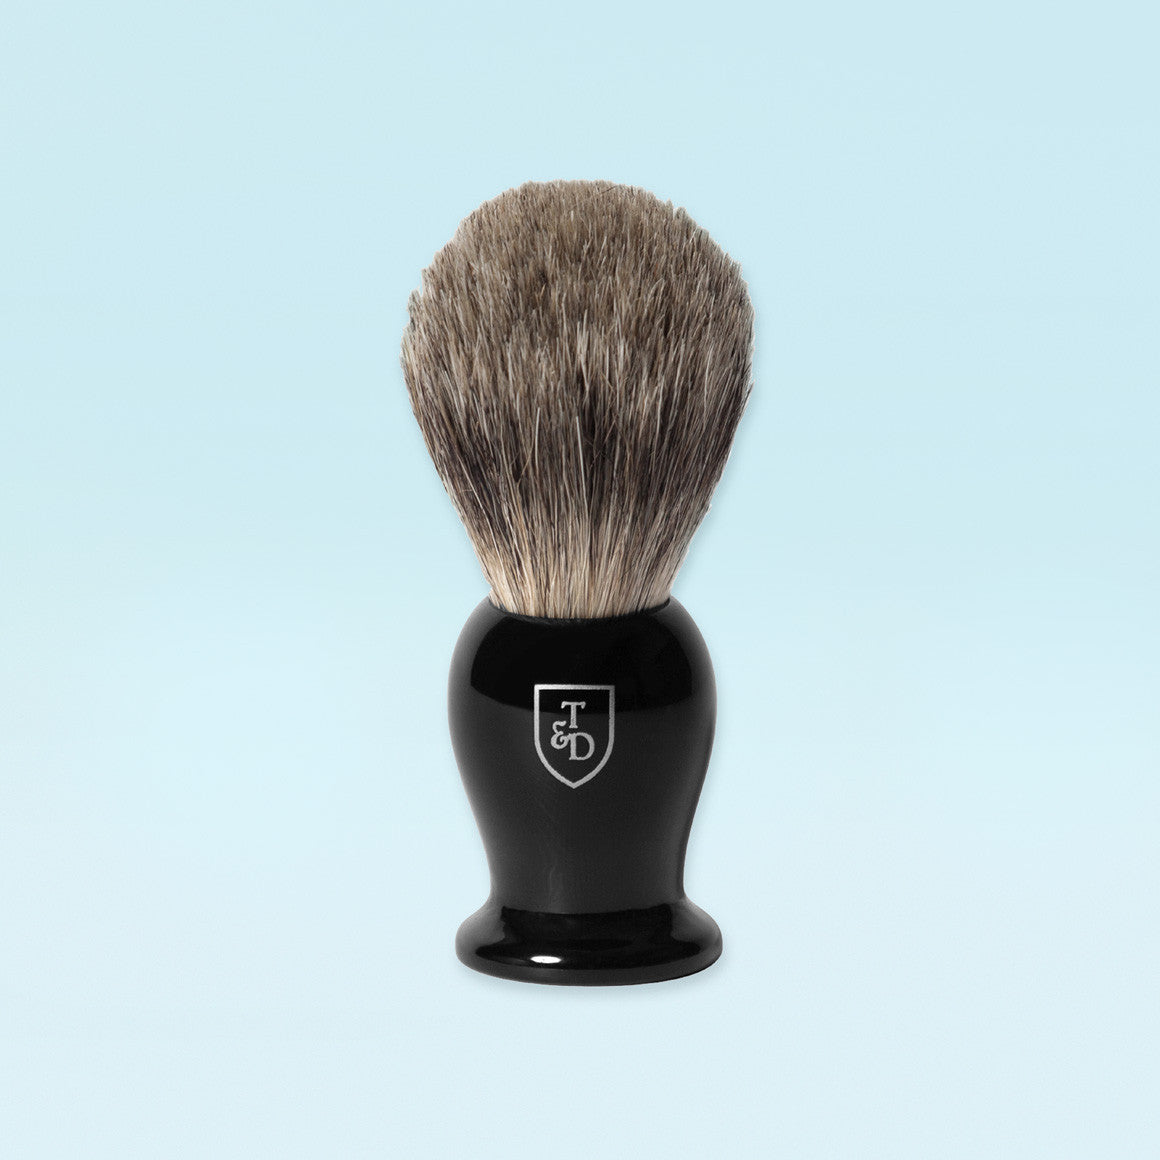 TRIUMPH & DISASTER BADGER HAIR SHAVING BRUSH